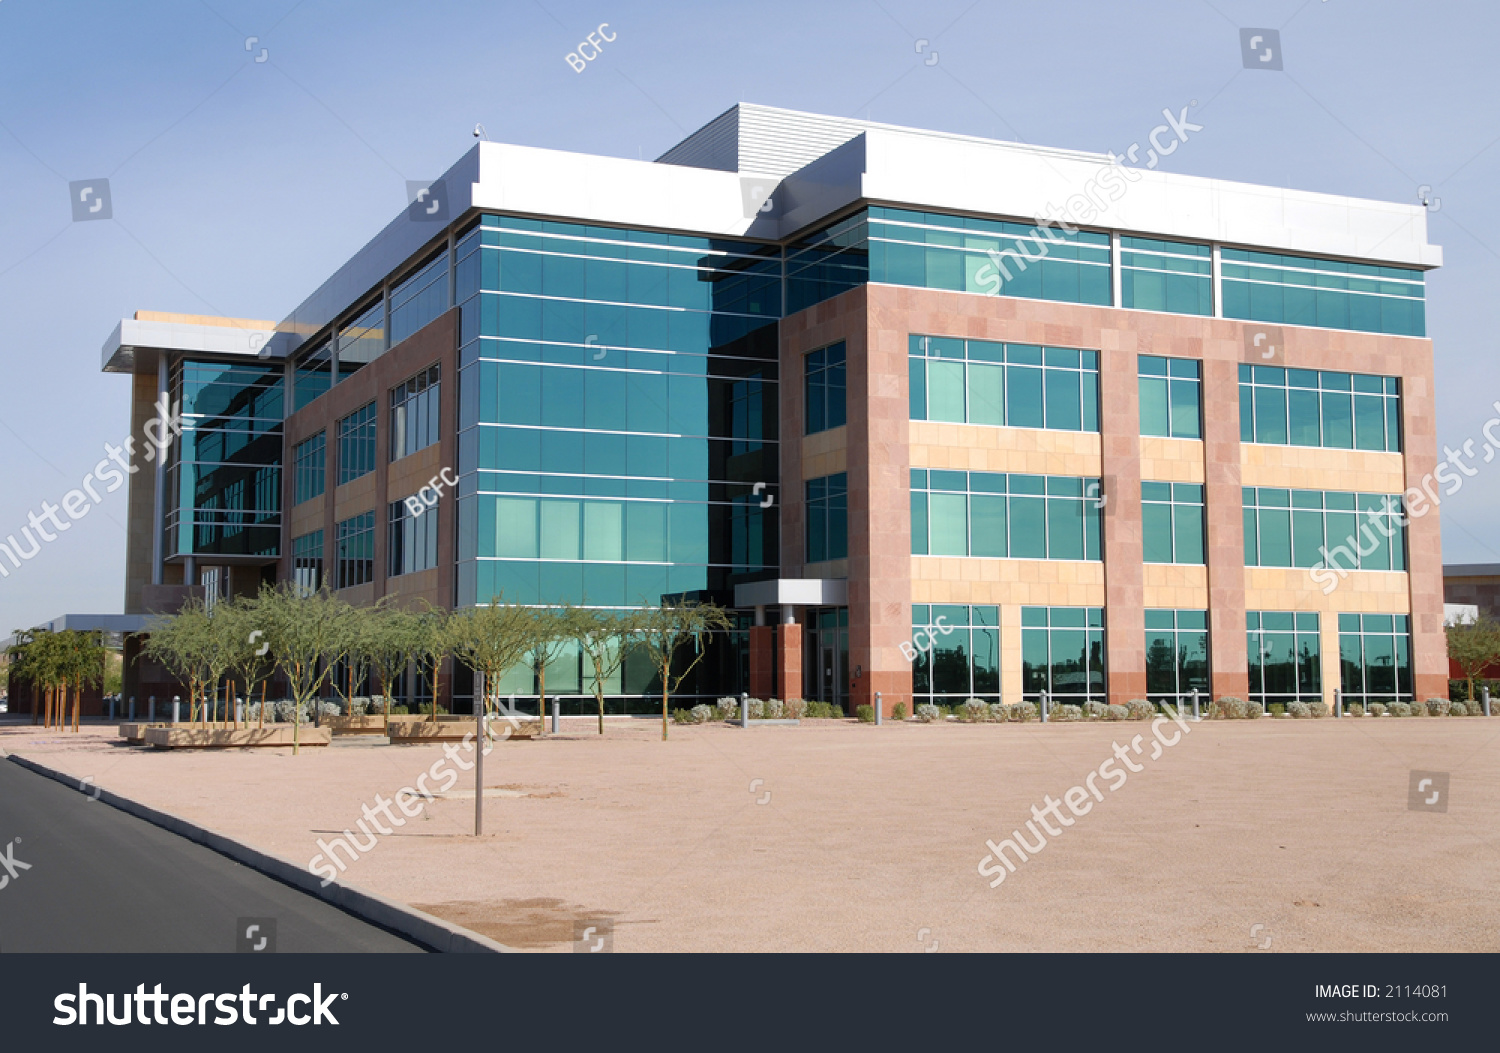 Modern commercial building stock photo 2114081 shutterstock for Modern business buildings